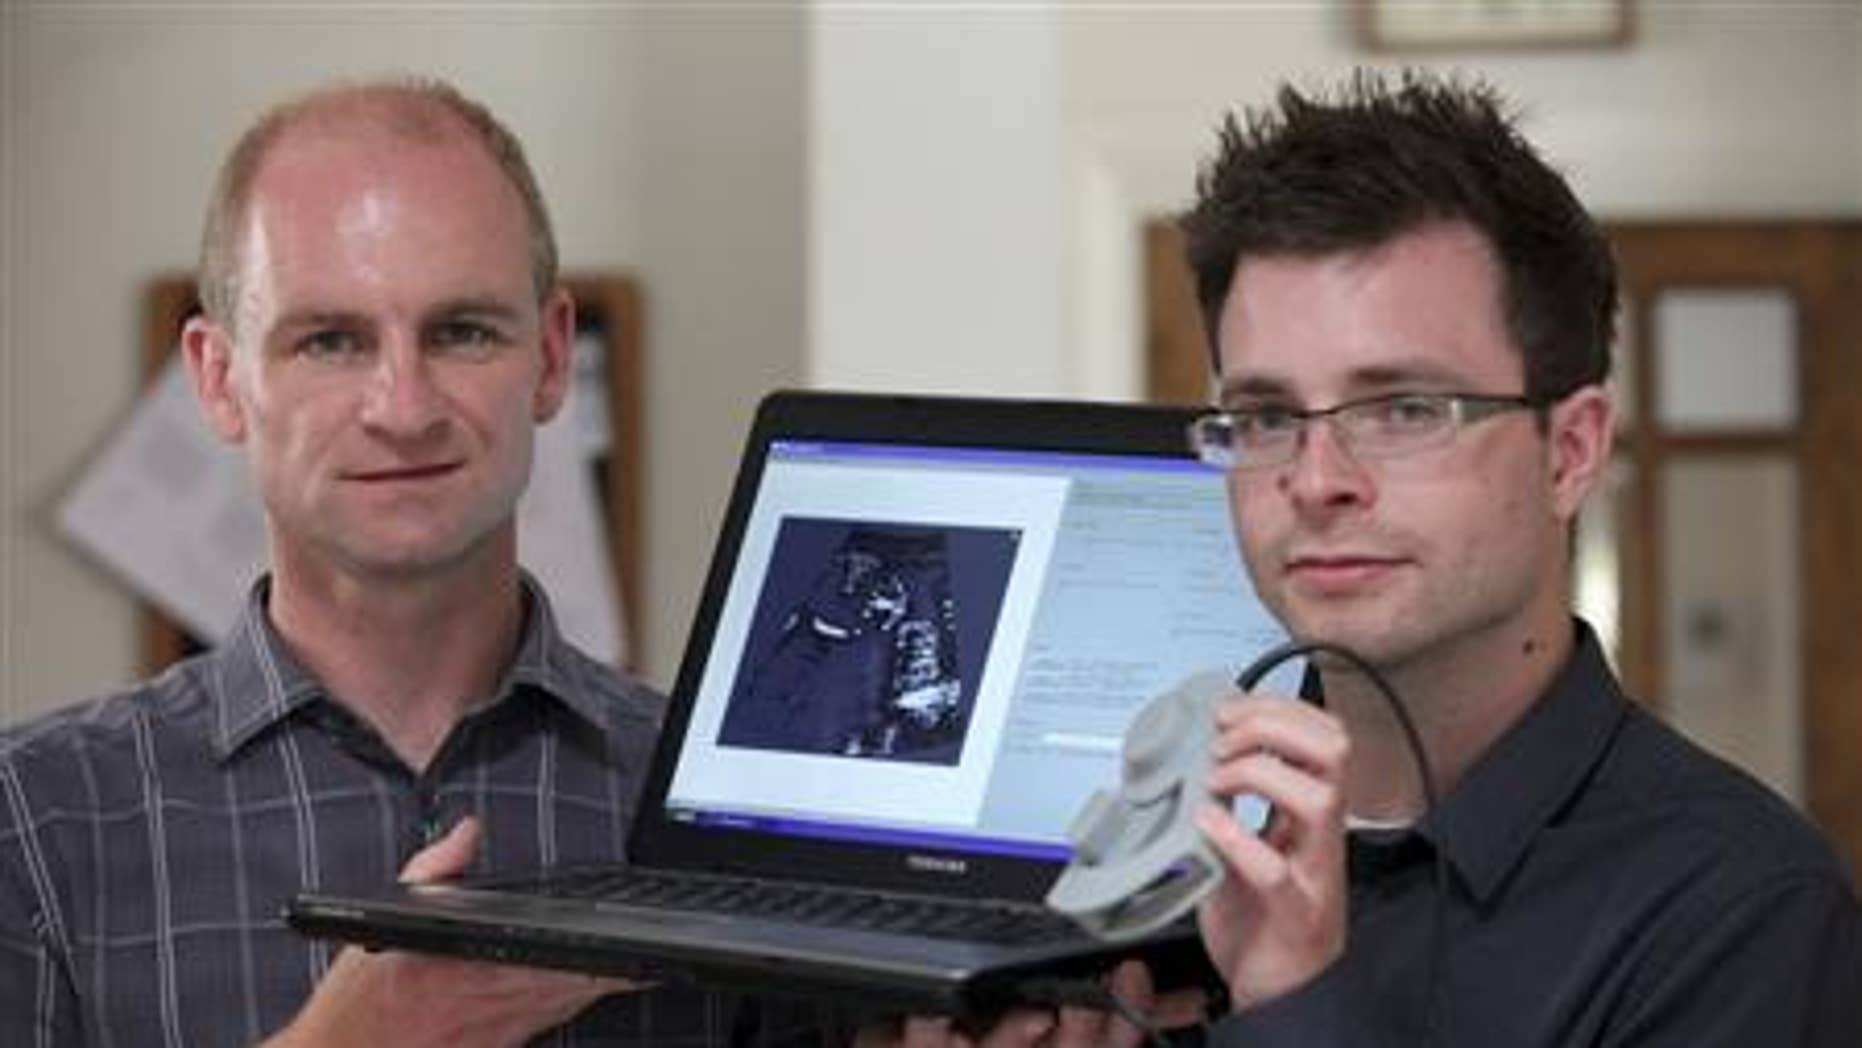 Jeff Neasham (L) and Dave Graham hold their low-cost ultrasound system in Newcastle on September 6, 2012. REUTERS/Newcastle University/Handout